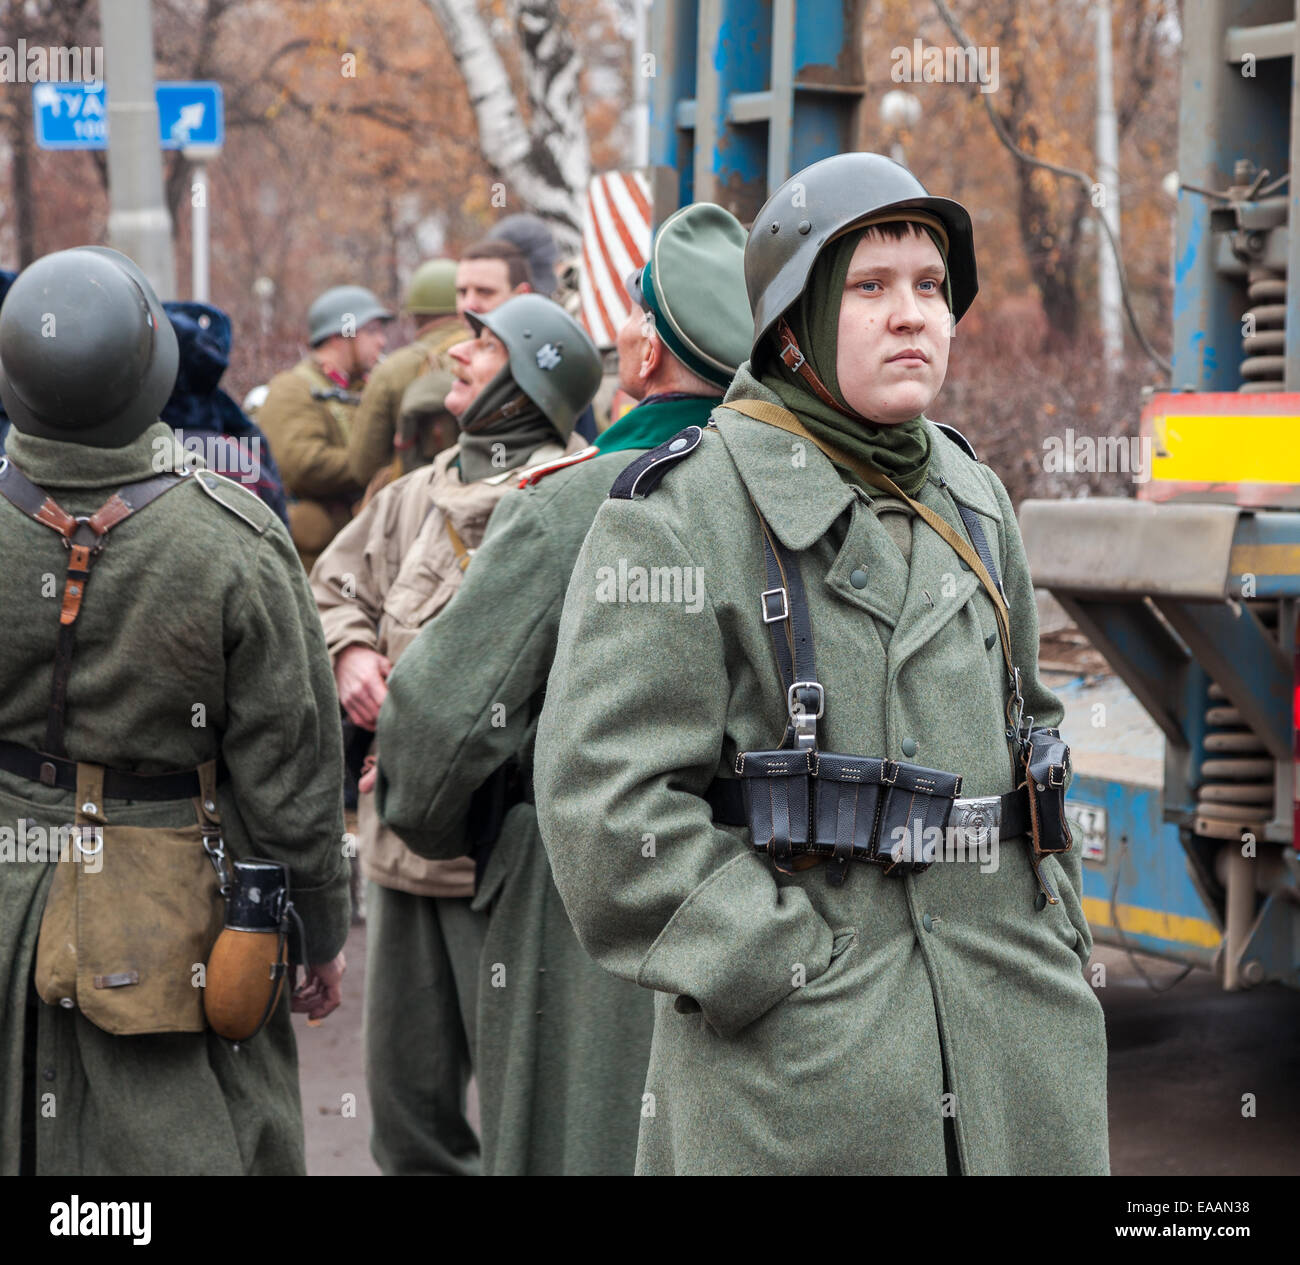 Member of Historical reenactment in German Army uniform after battle - Stock Image